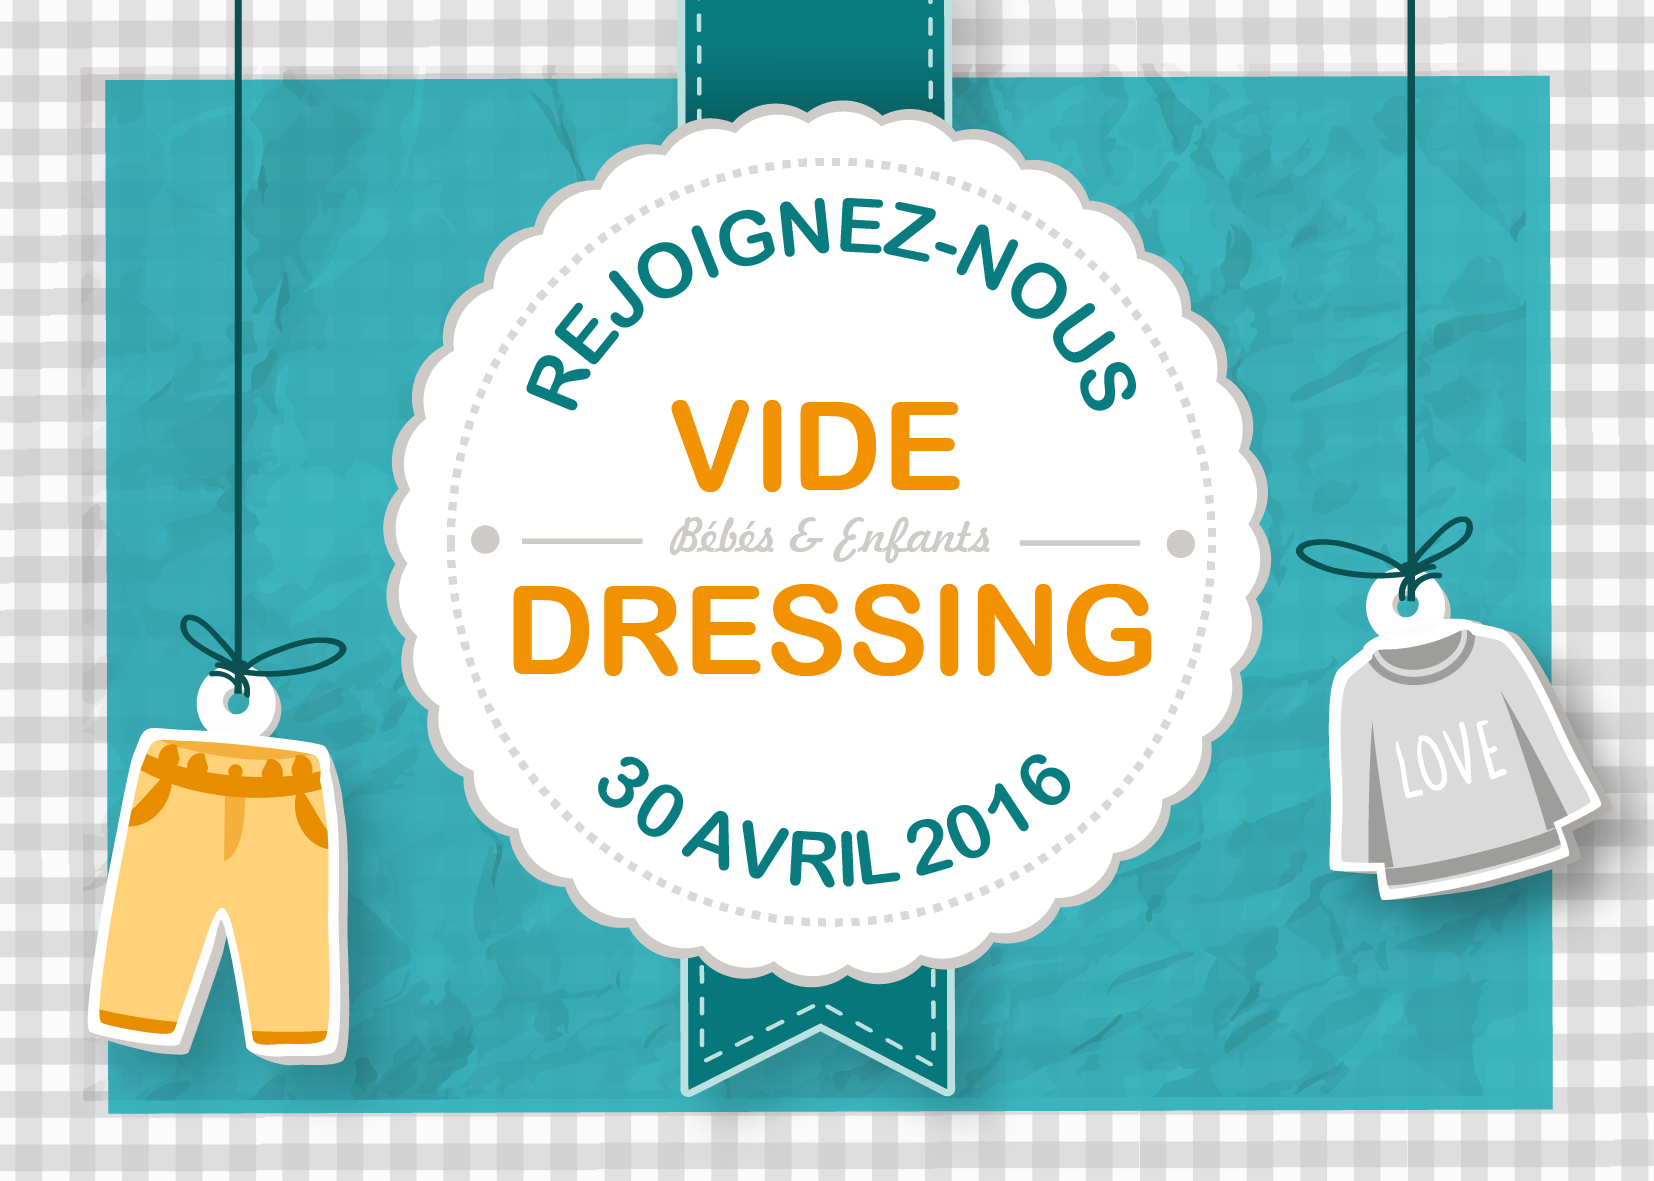 vide dressing maman b b rennes le 30 avril chez copain copine rennes des bons plans tous. Black Bedroom Furniture Sets. Home Design Ideas